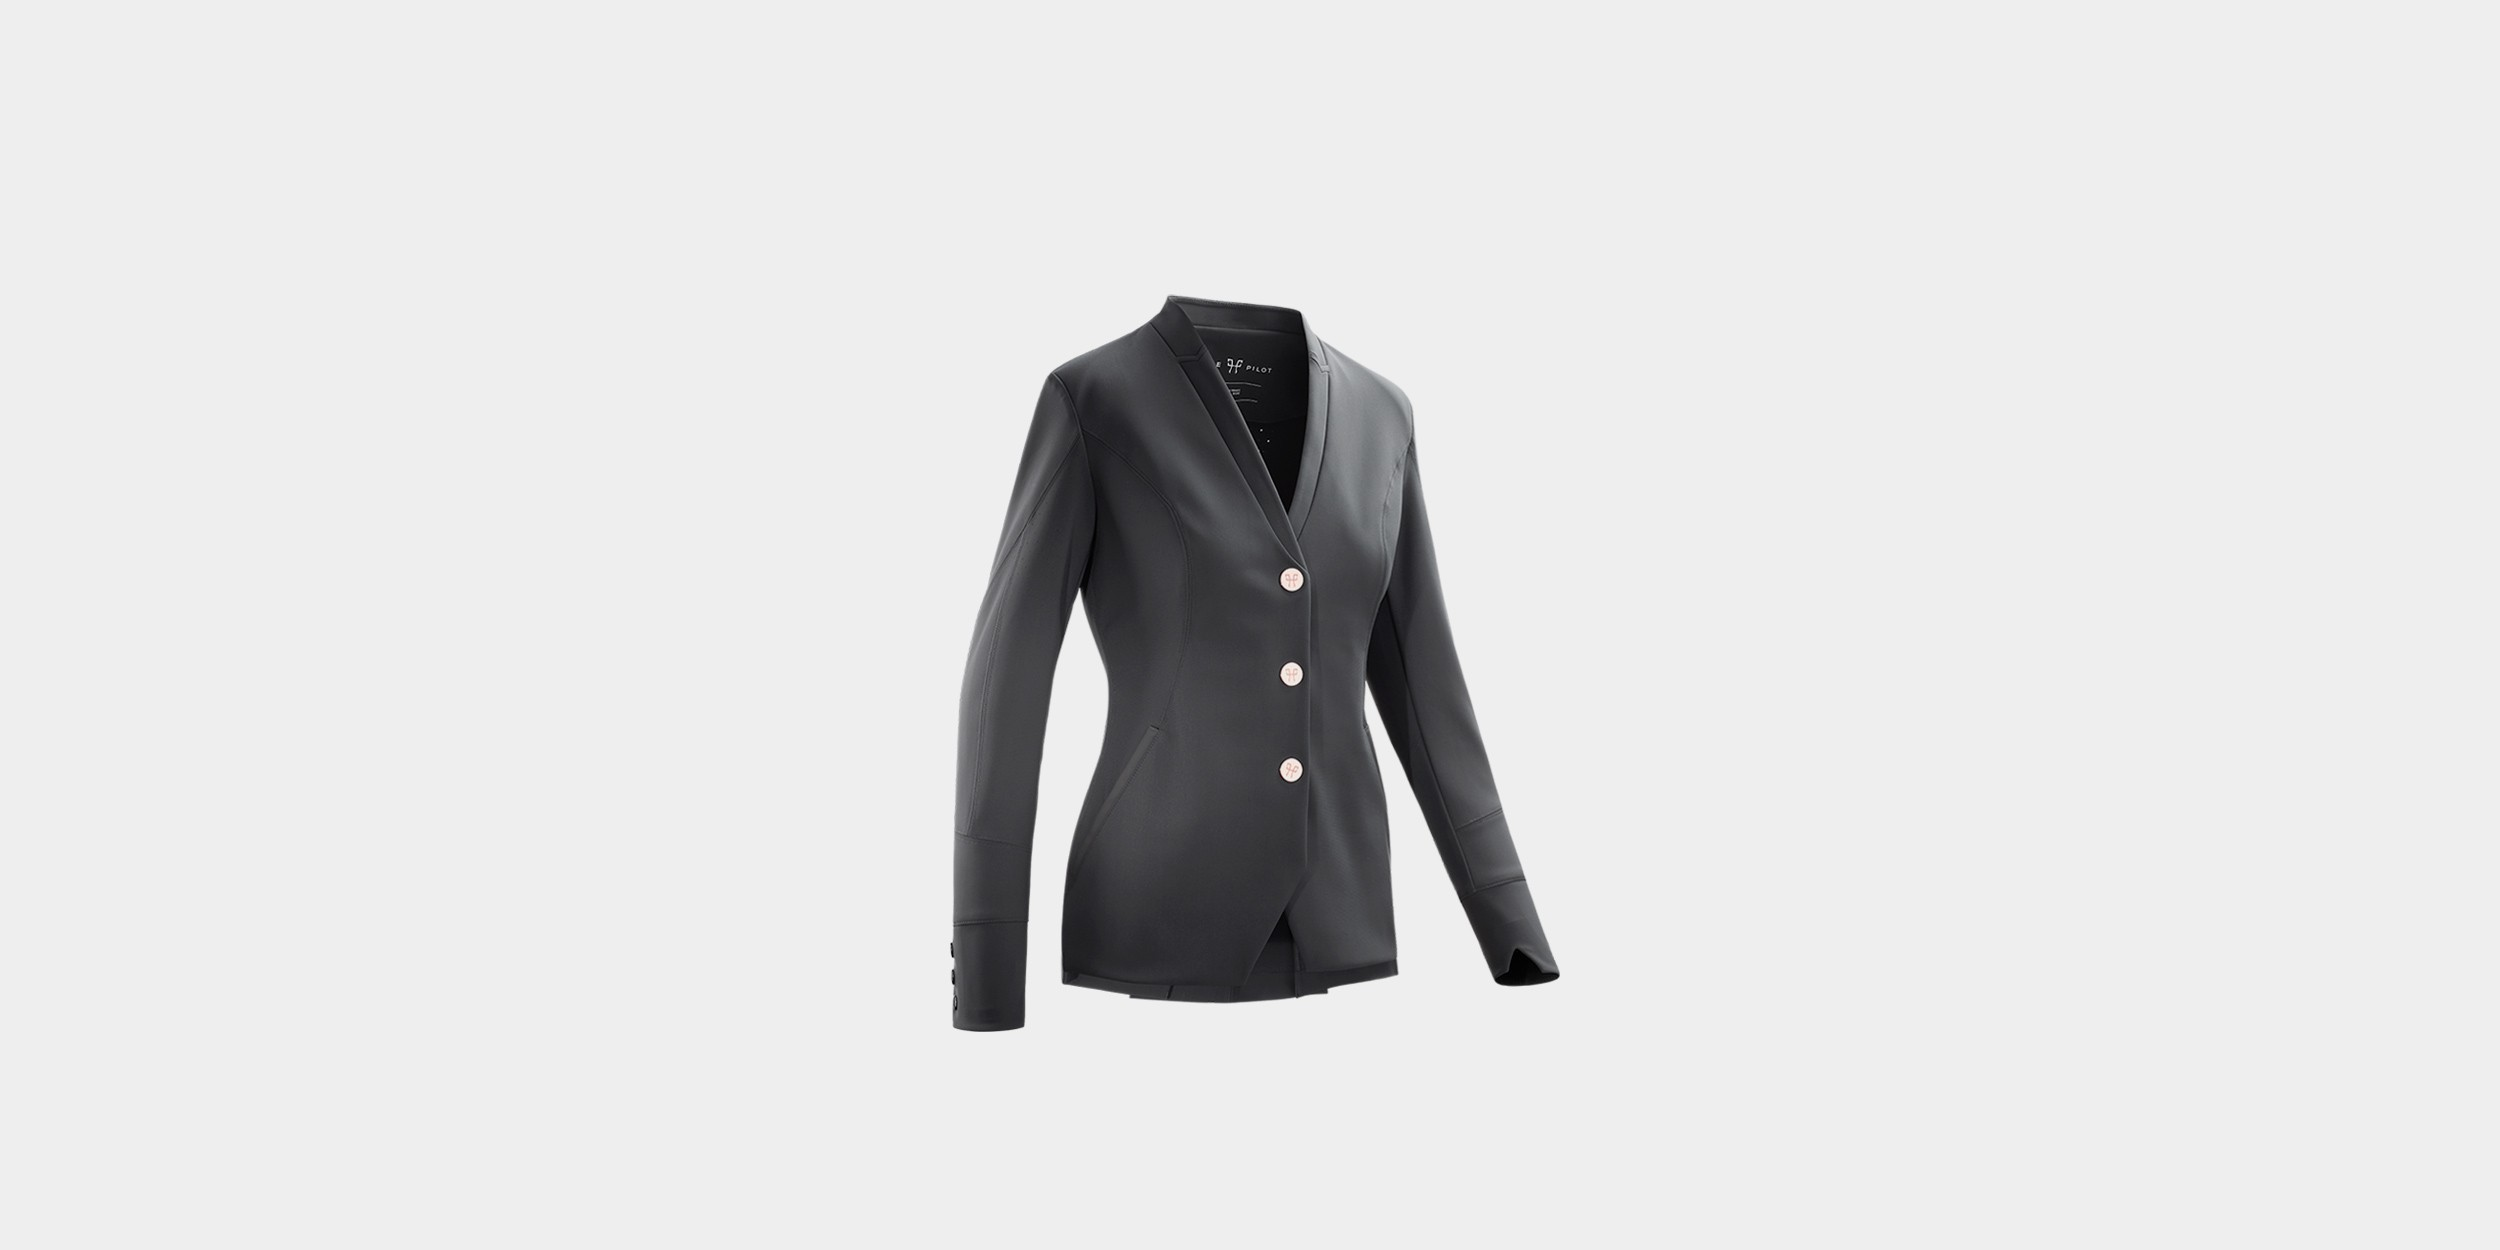 AEROTECH women's riding competition jacket